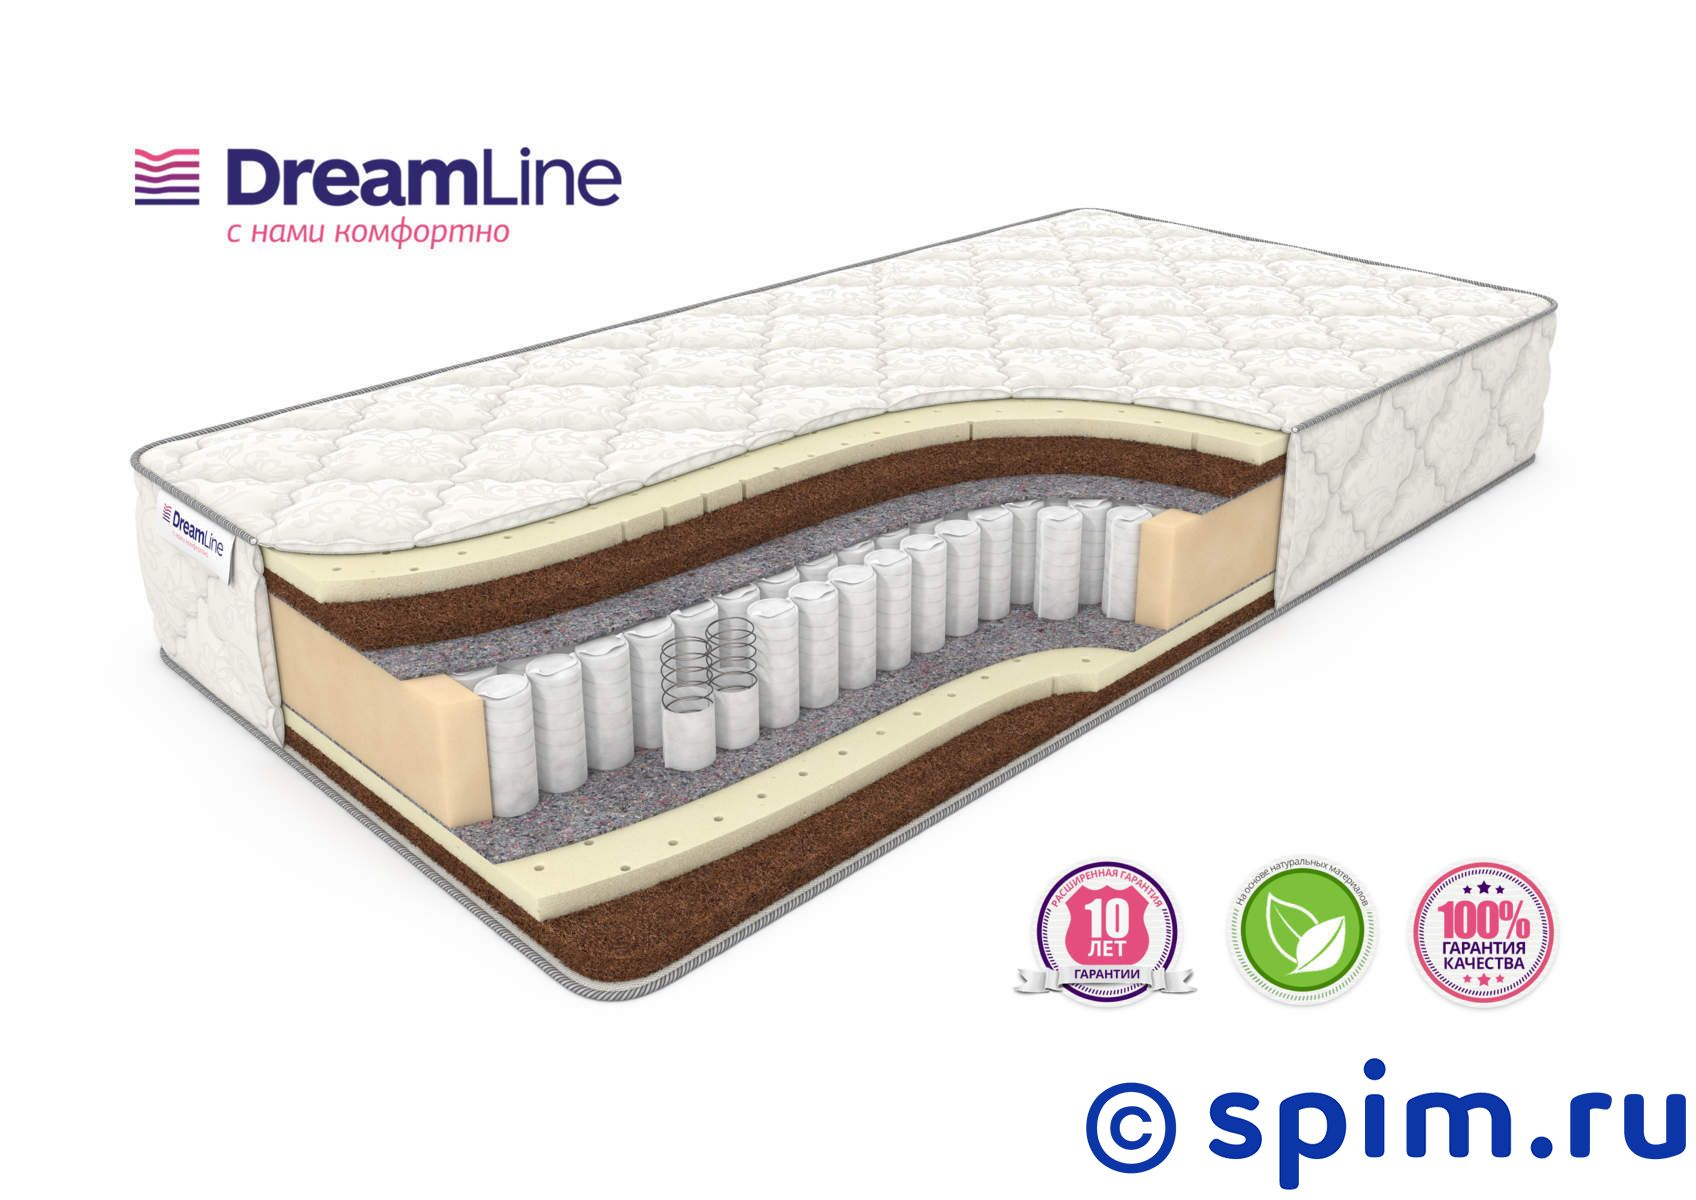 Матрас DreamLine Prime Mix Tfk 150х195 см матрас dreamline dreamroll contour mix 180х200